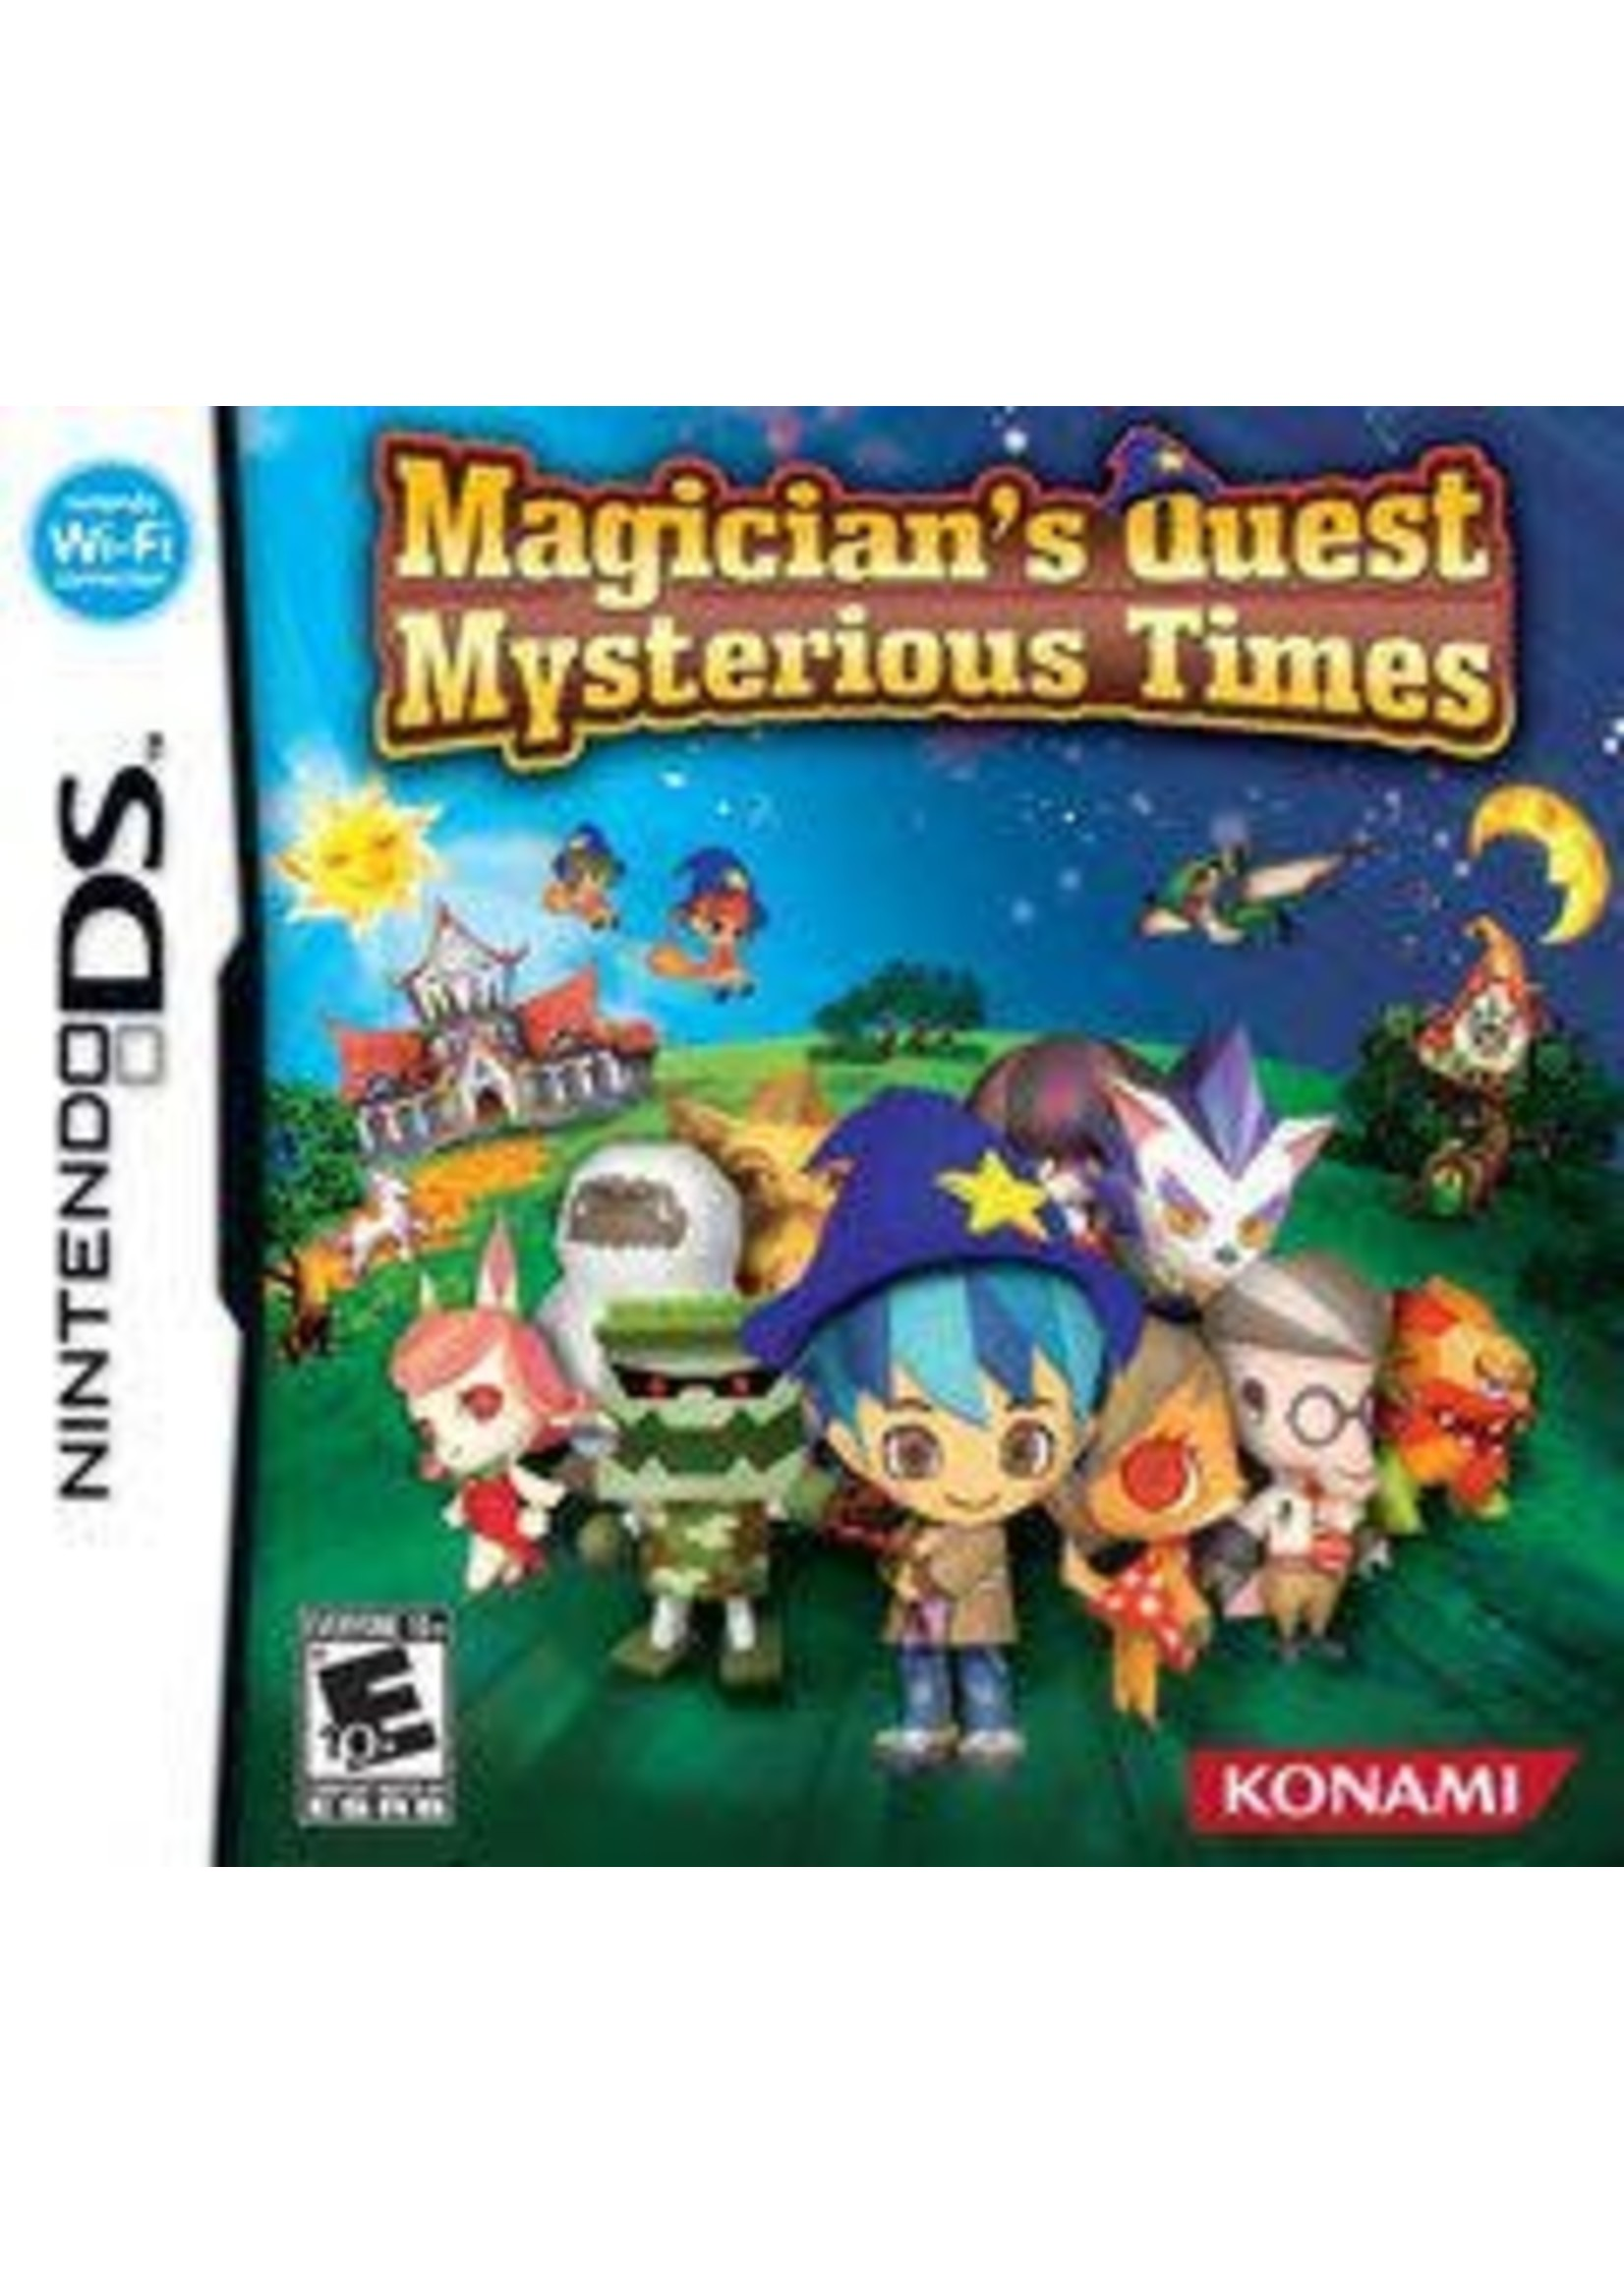 Magician's Quest: Mysterious Times Nintendo DS